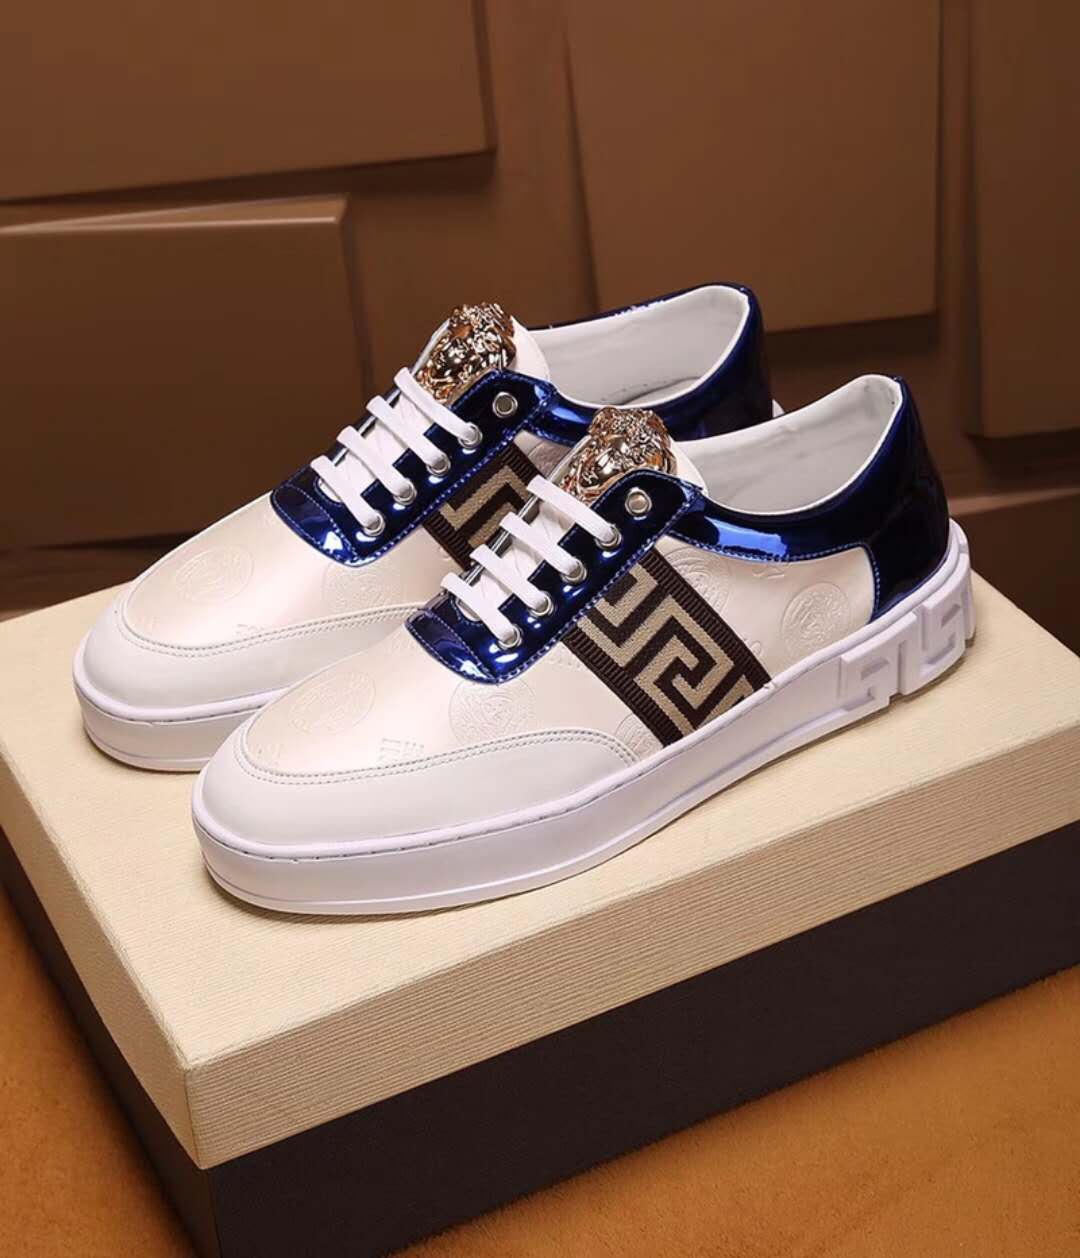 2f5f70009aa5 95.00EUR, VERSACE chaussures homme femme,Versace Baskets City,Versace Jeans  chaussure - page4,chaussures